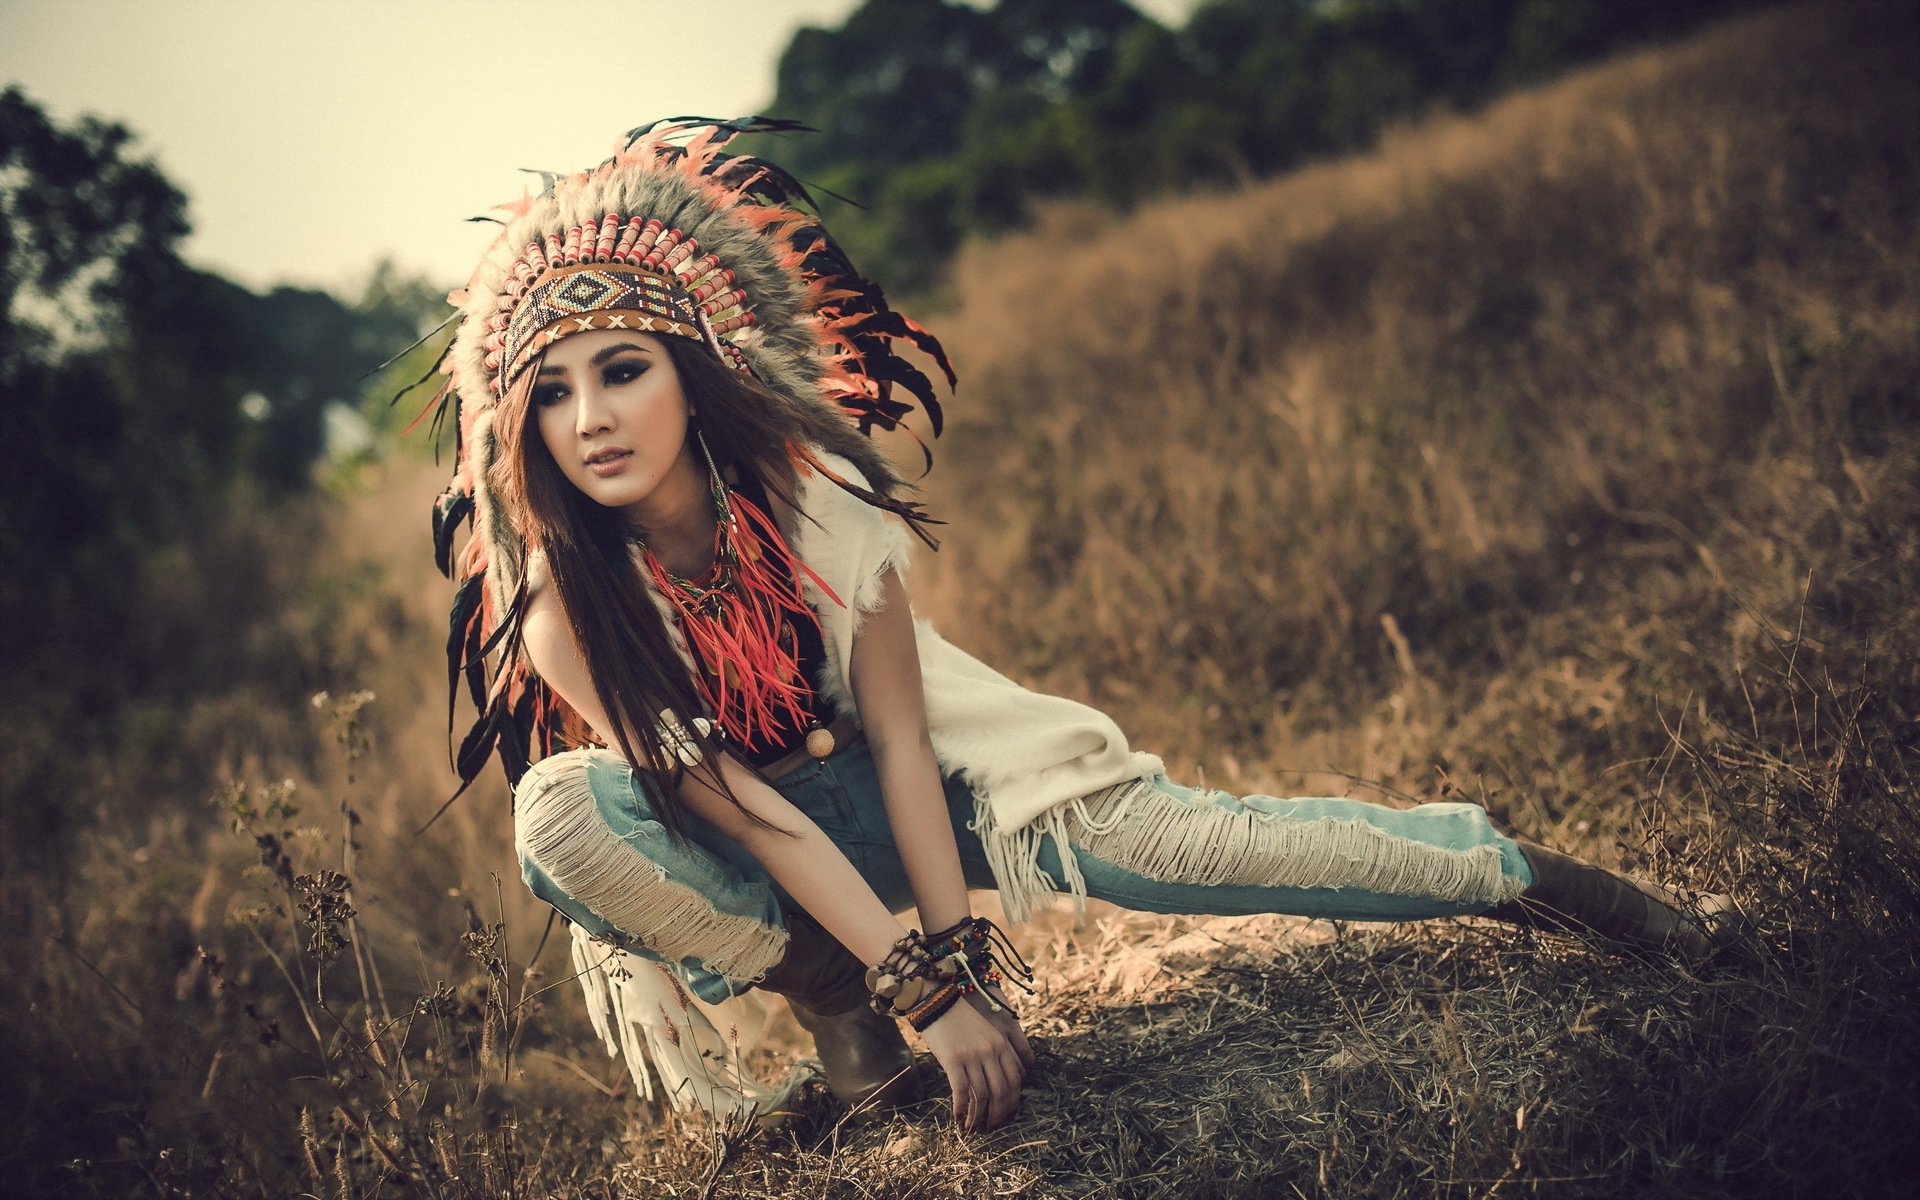 native american woman wallpaper hd pic wpe005931